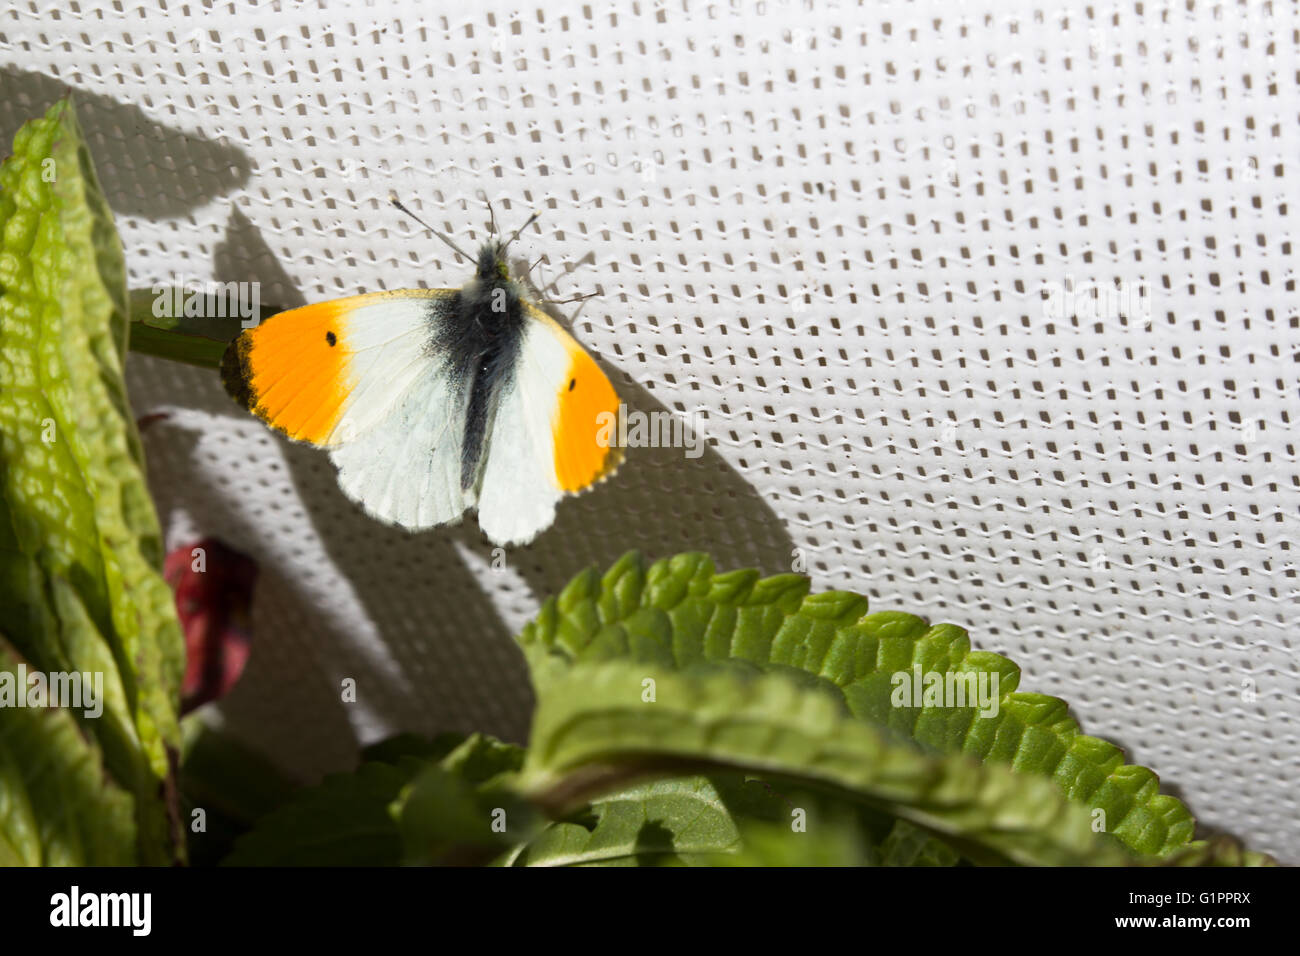 Orange Tip (male) butterfly, Anthocharis cardamines, resting on a cricket sunscreen at Durham, England. Stock Photo